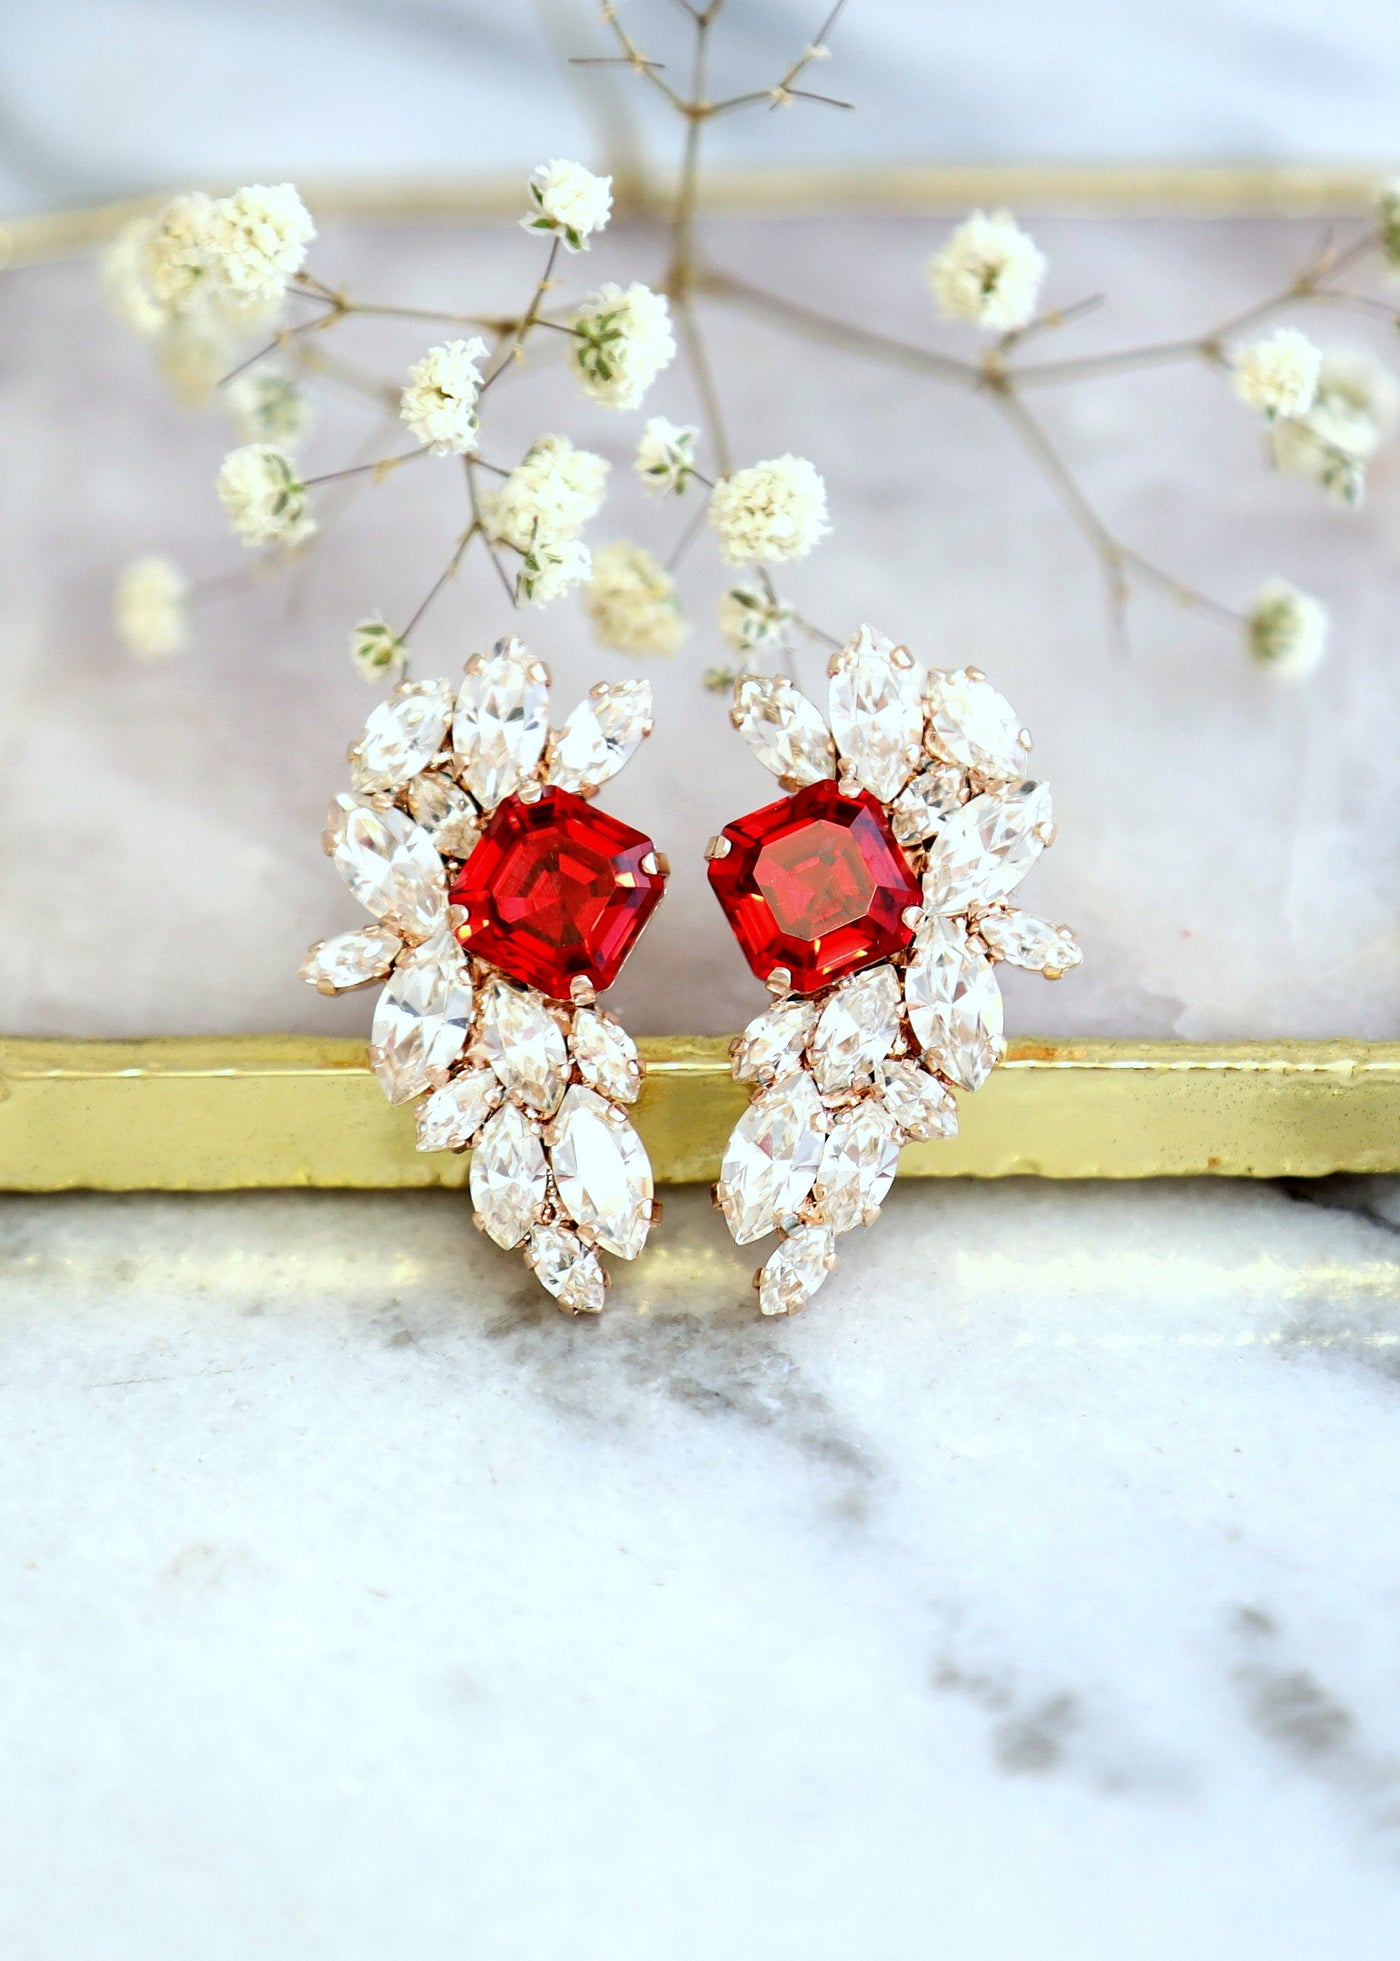 Rachel Red Clear Crystal Swarovski Cluster Earrings